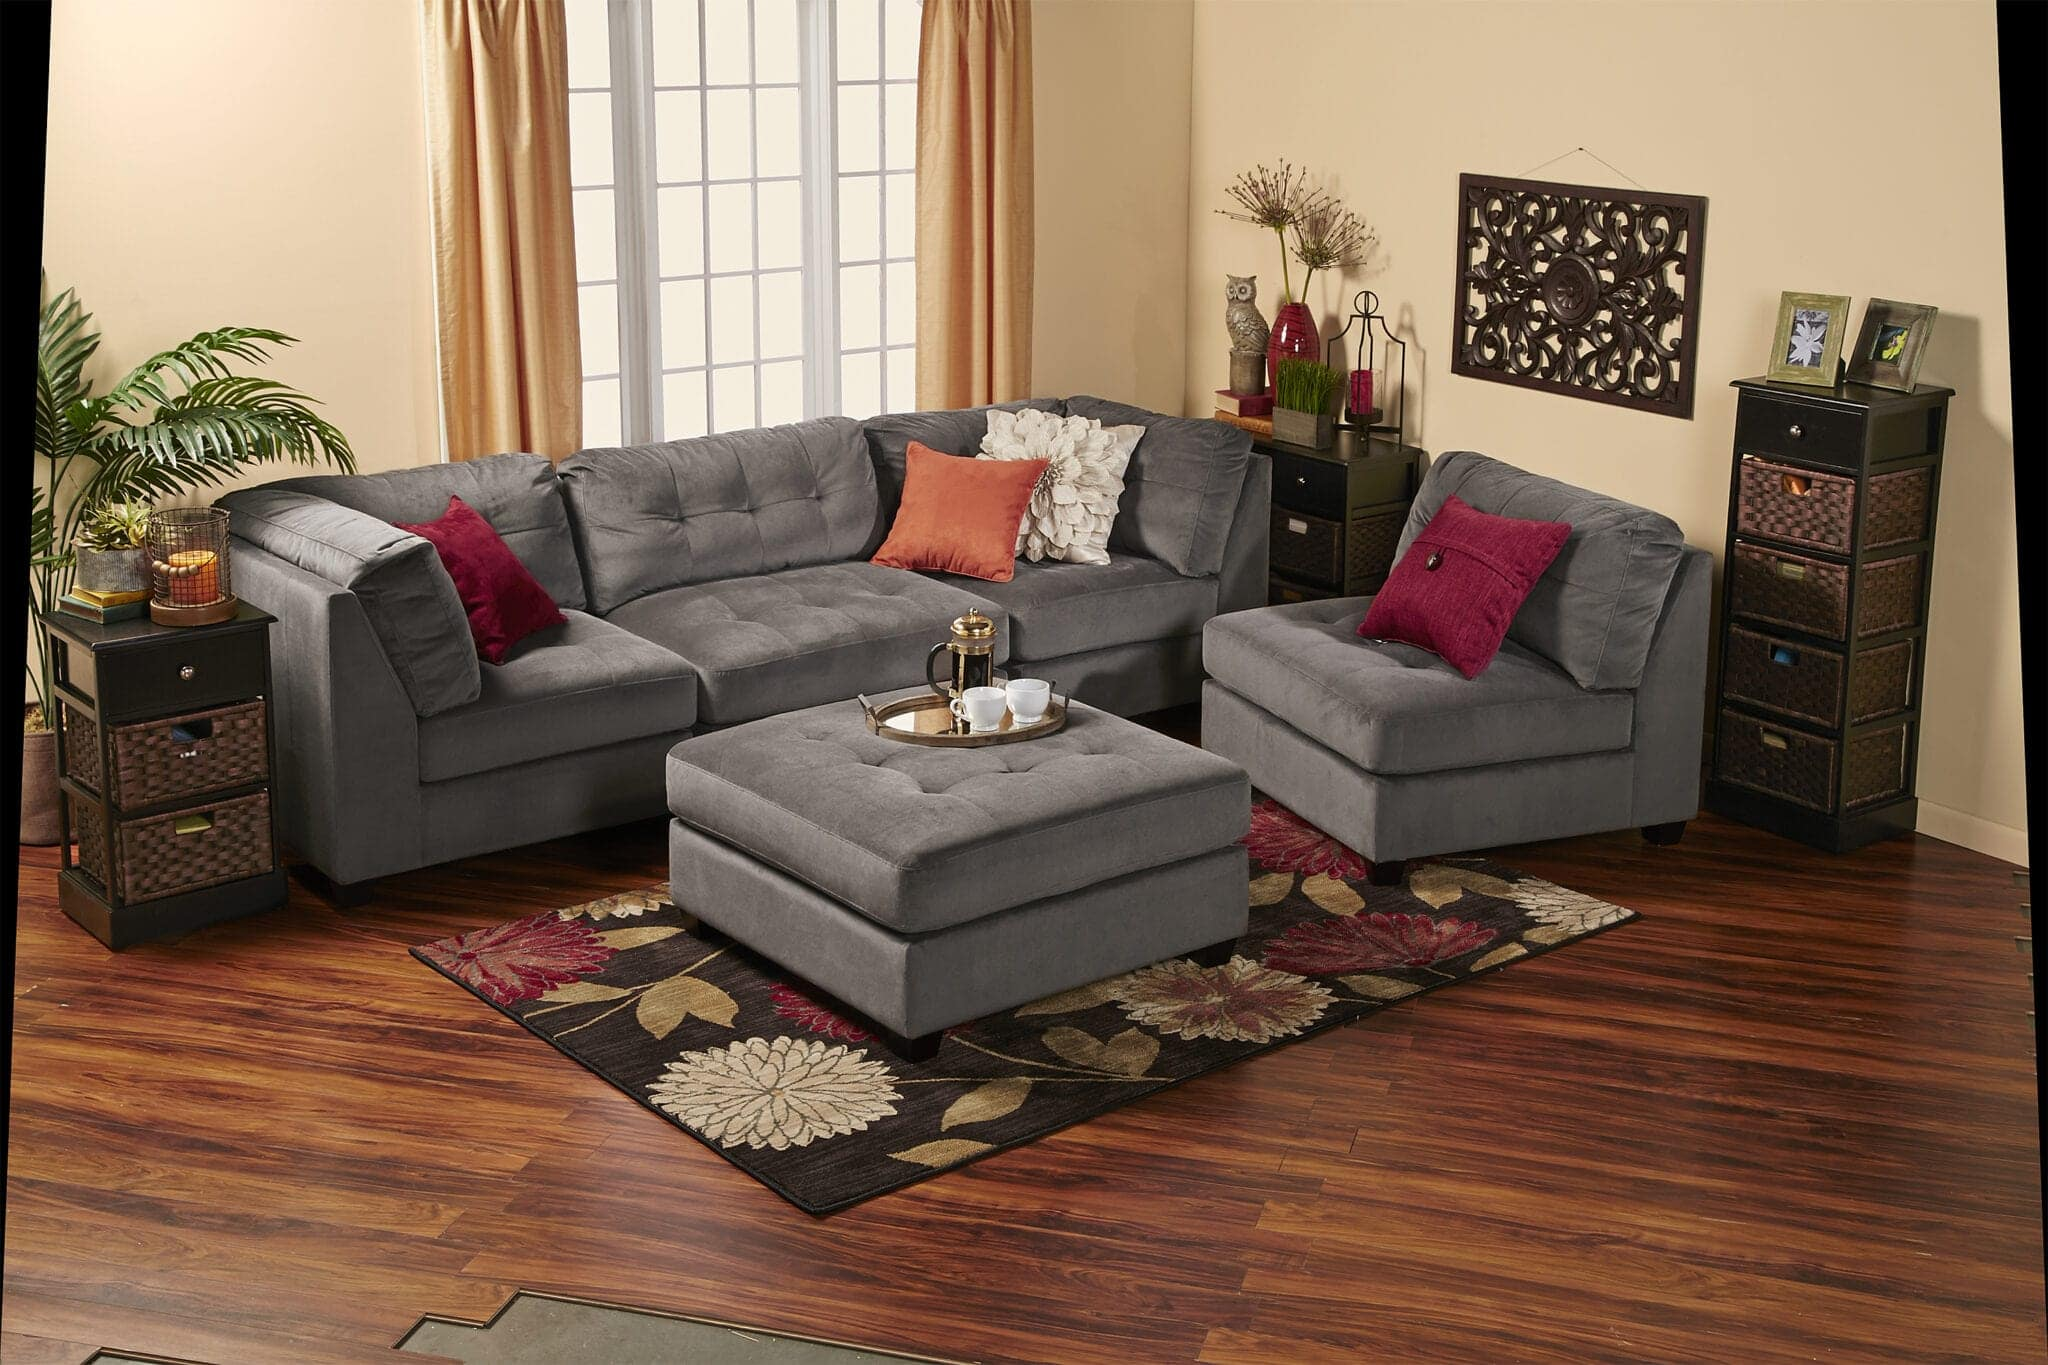 Save & Fred Meyer Truckload Furniture Event - Couches Under $300 5-pc ...